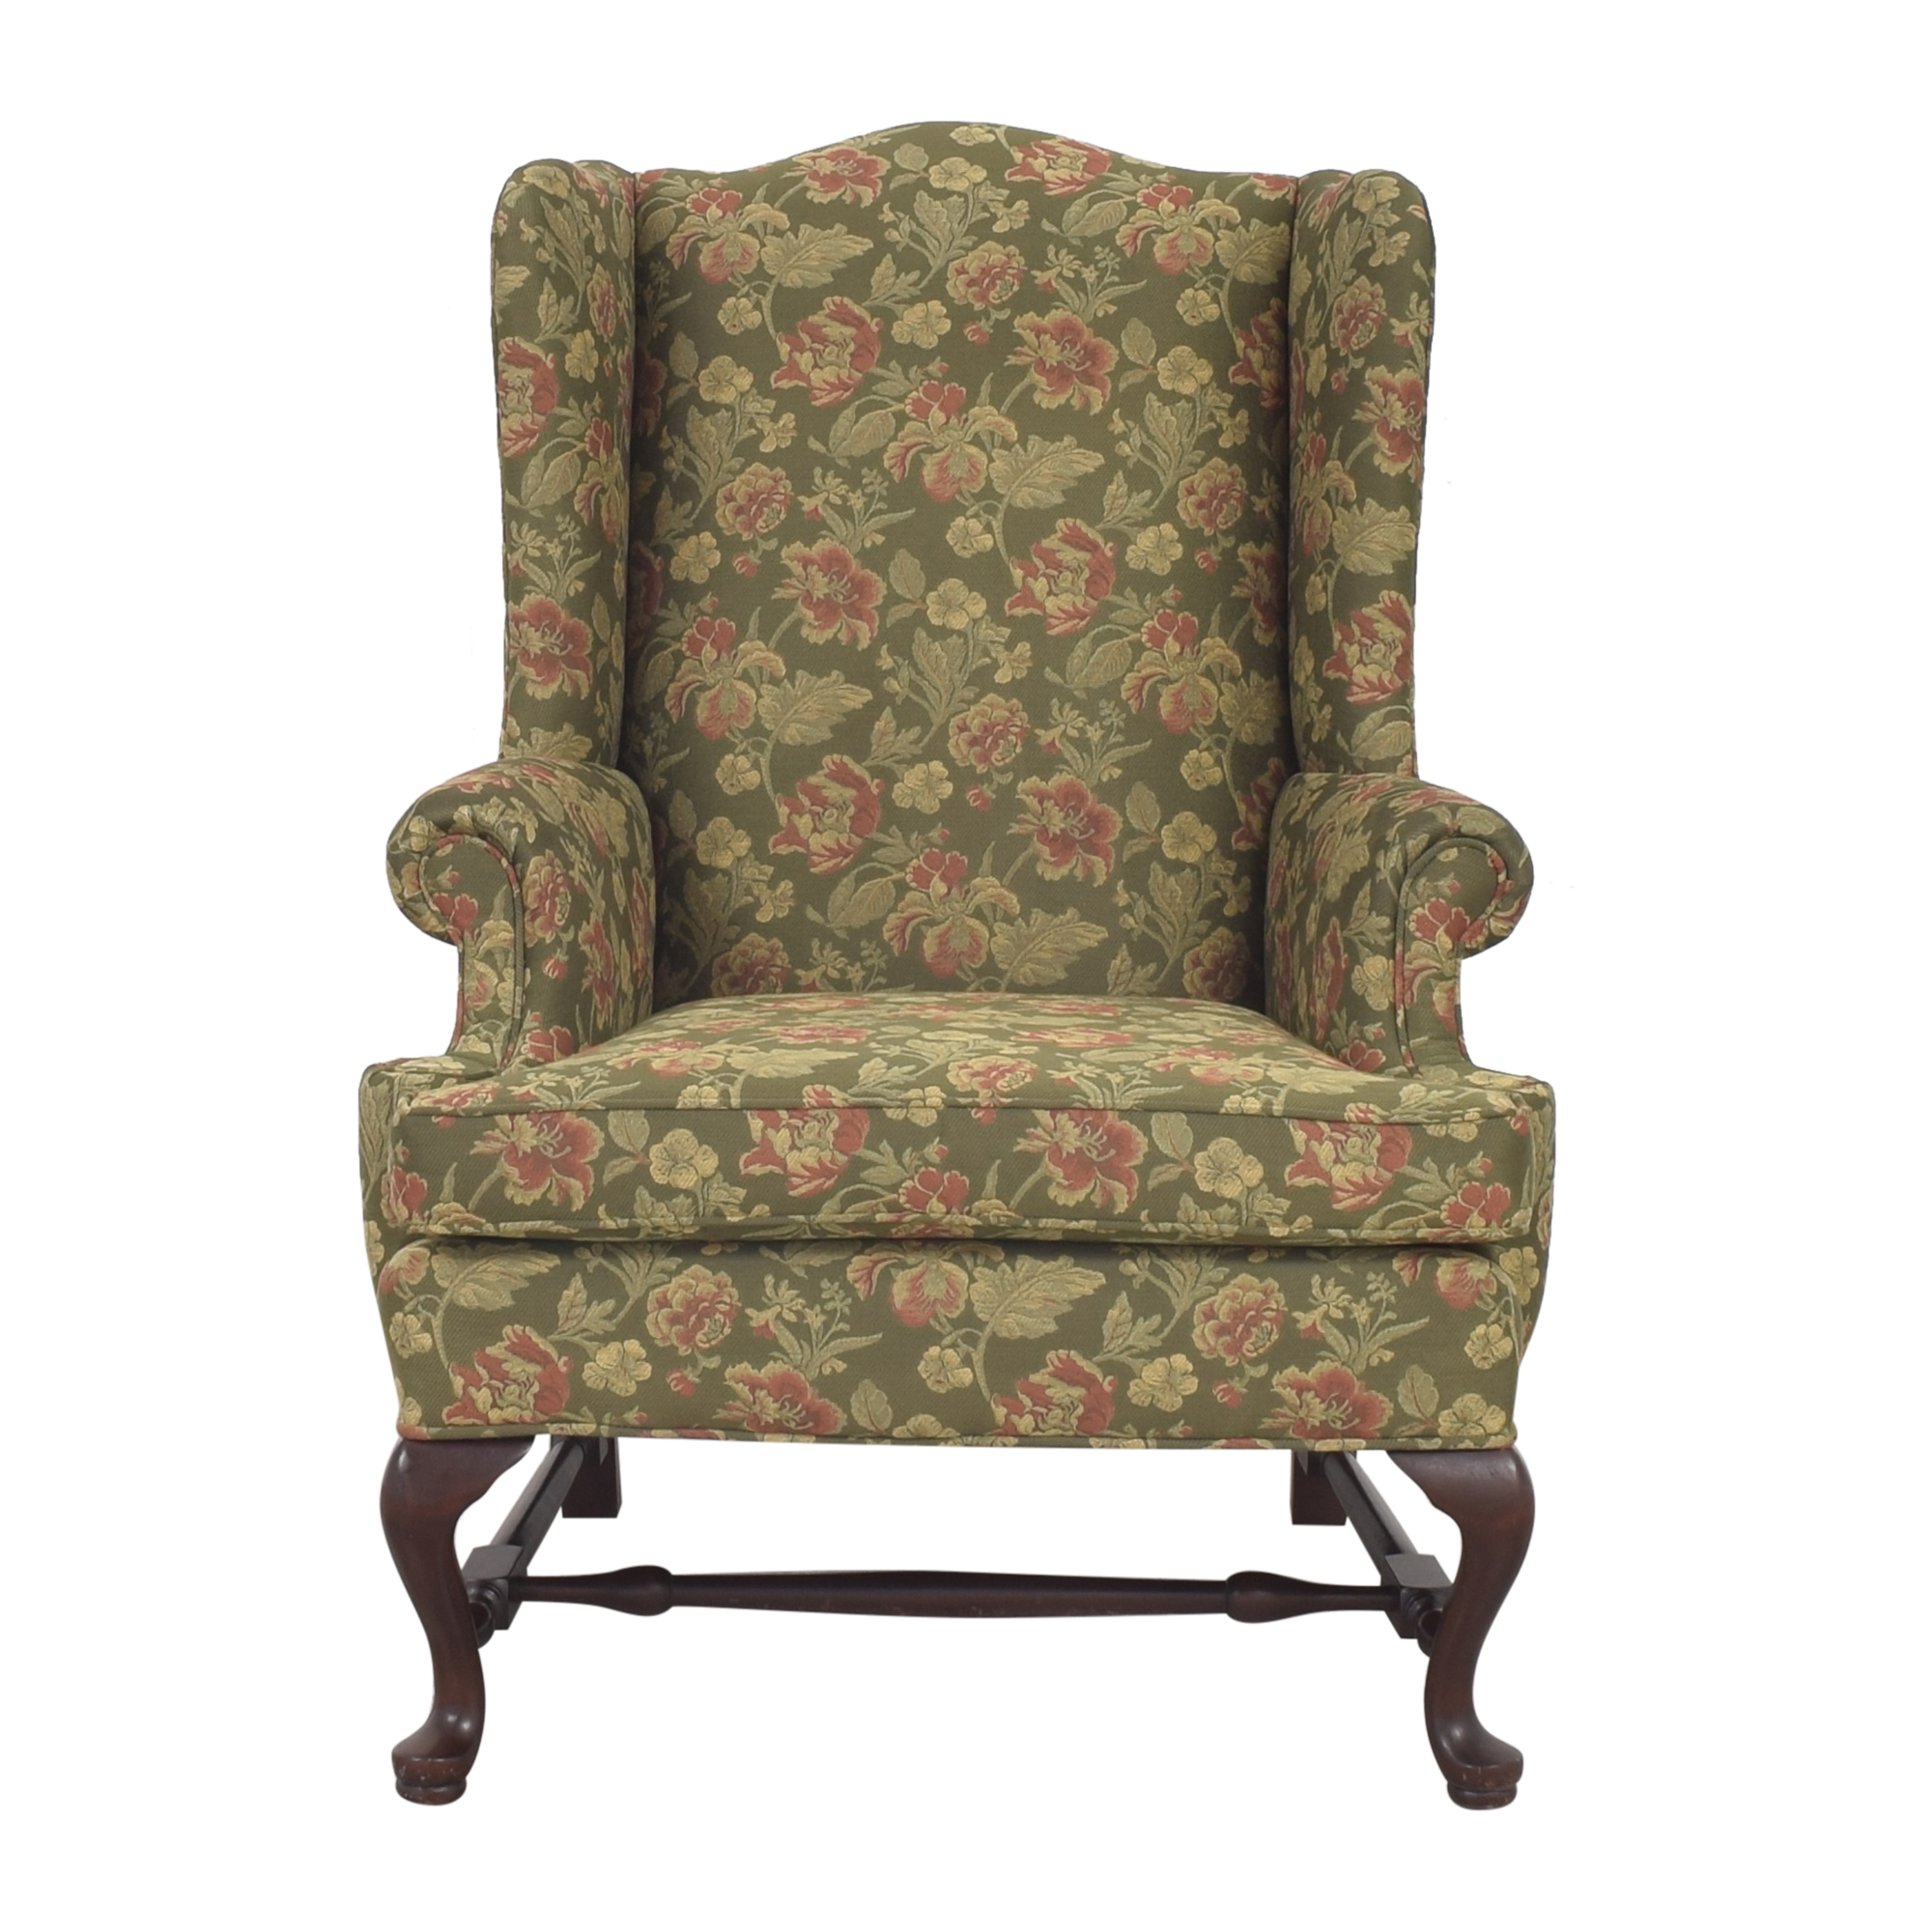 Ethan Allen Ethan Allen Wing Back Accent Chair for sale